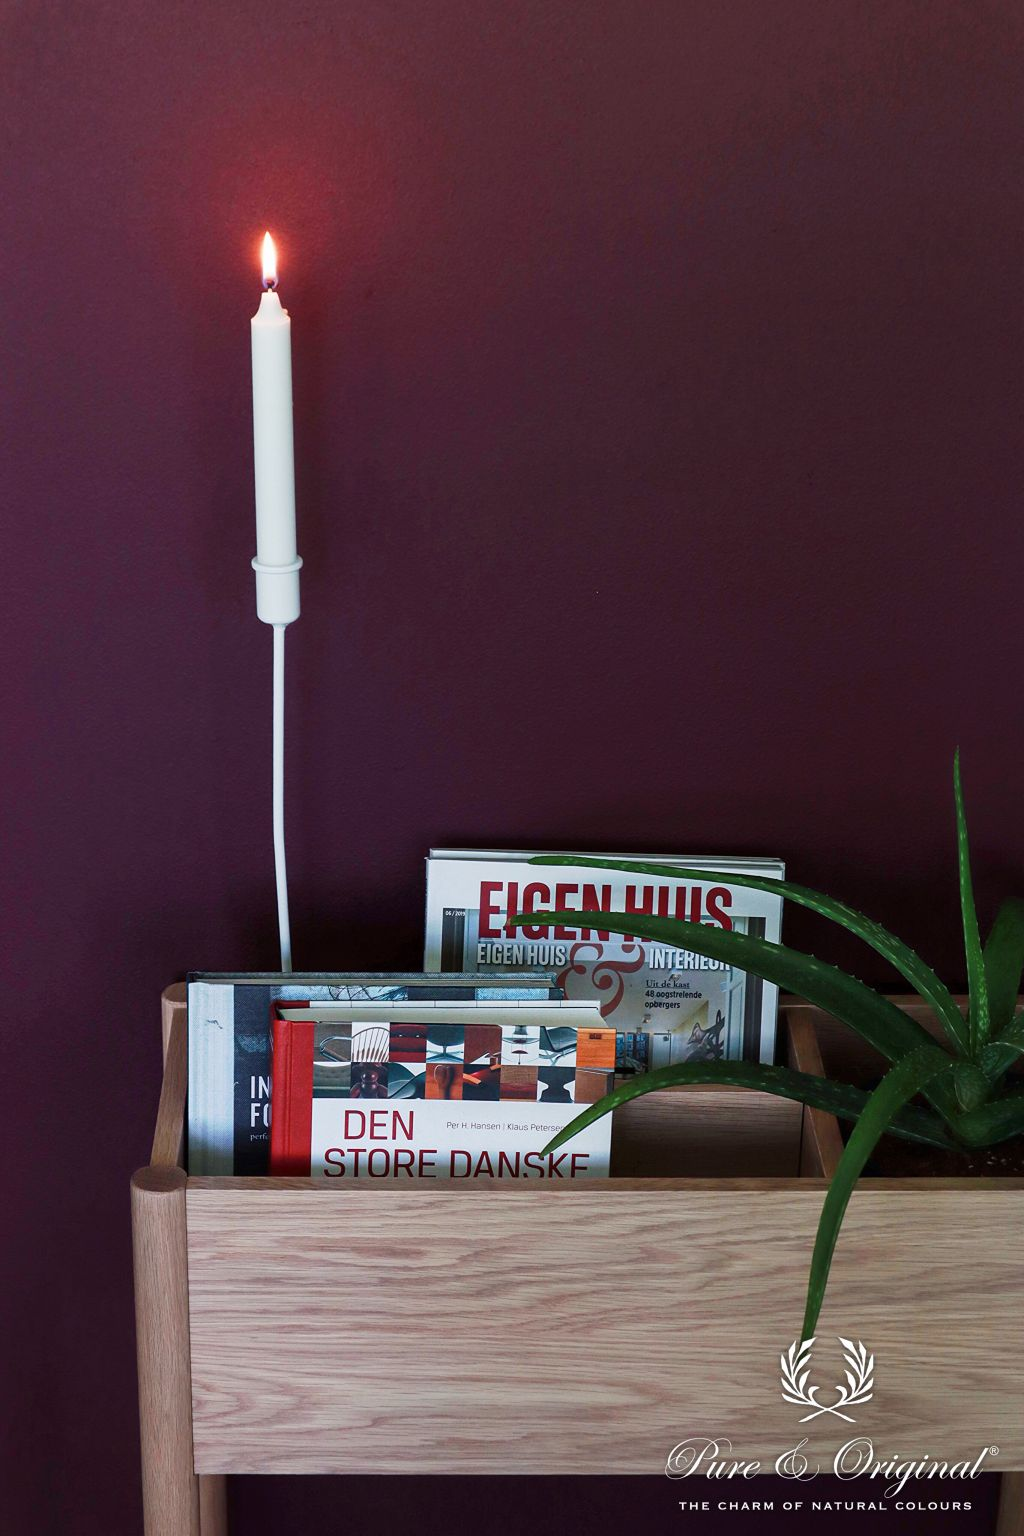 Plum dark purple wall with plant, magazine stand, and candle